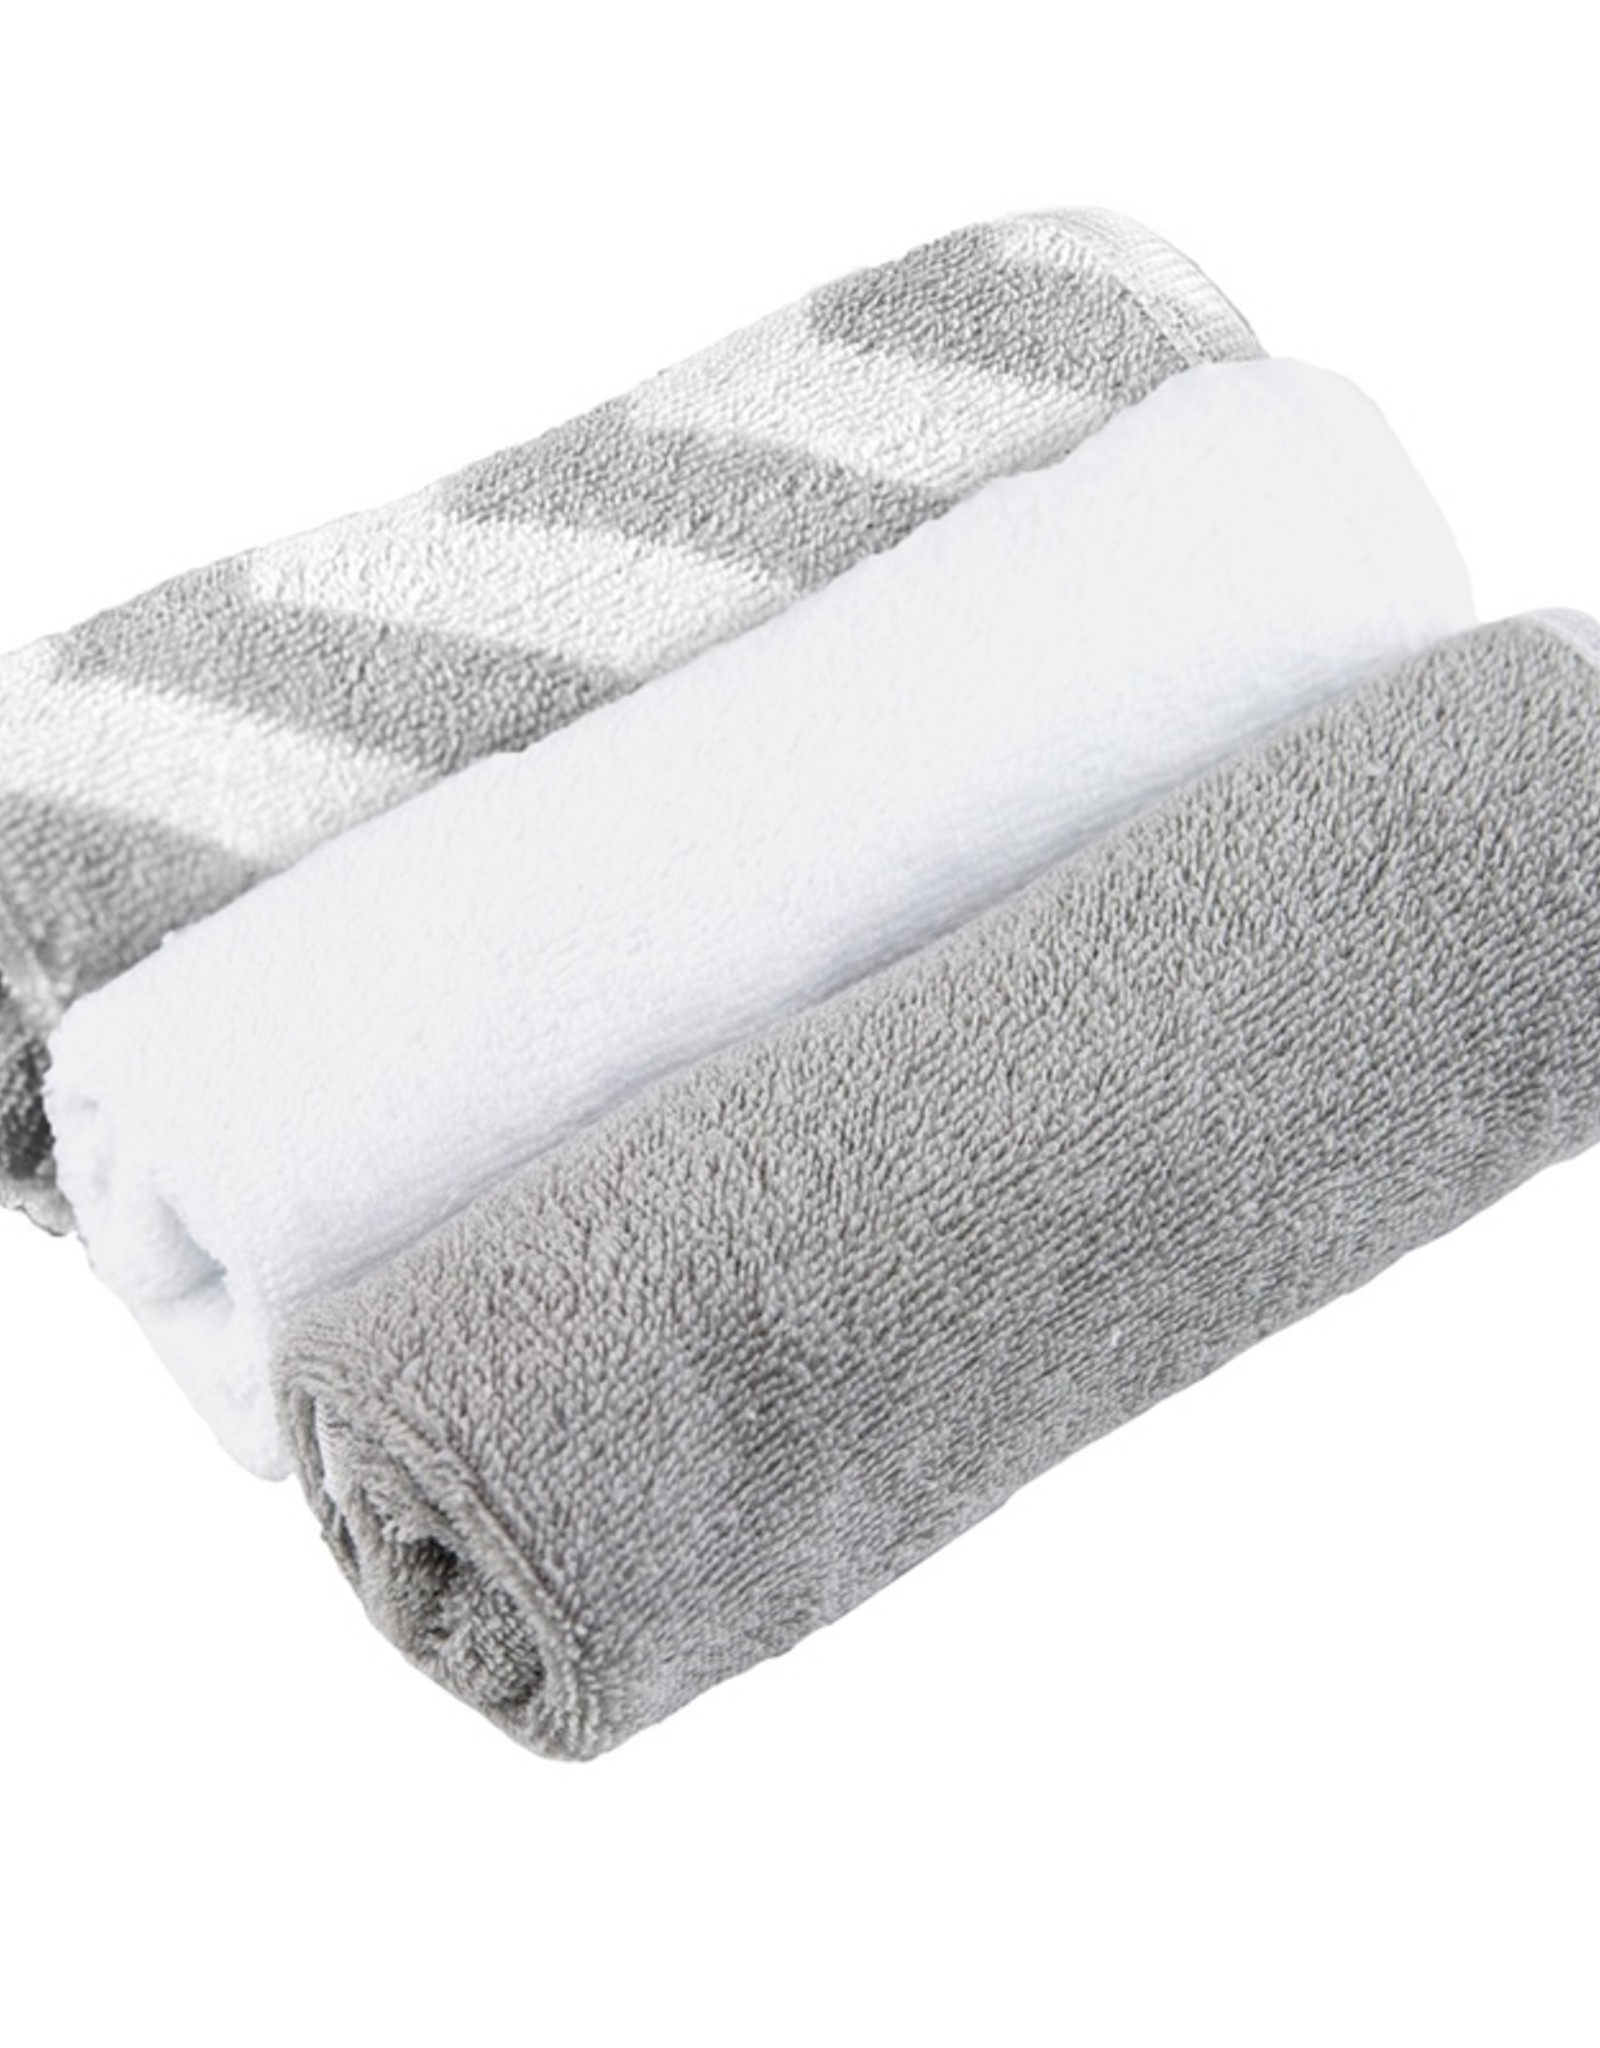 Kushies 3 Pack Wash Cloths